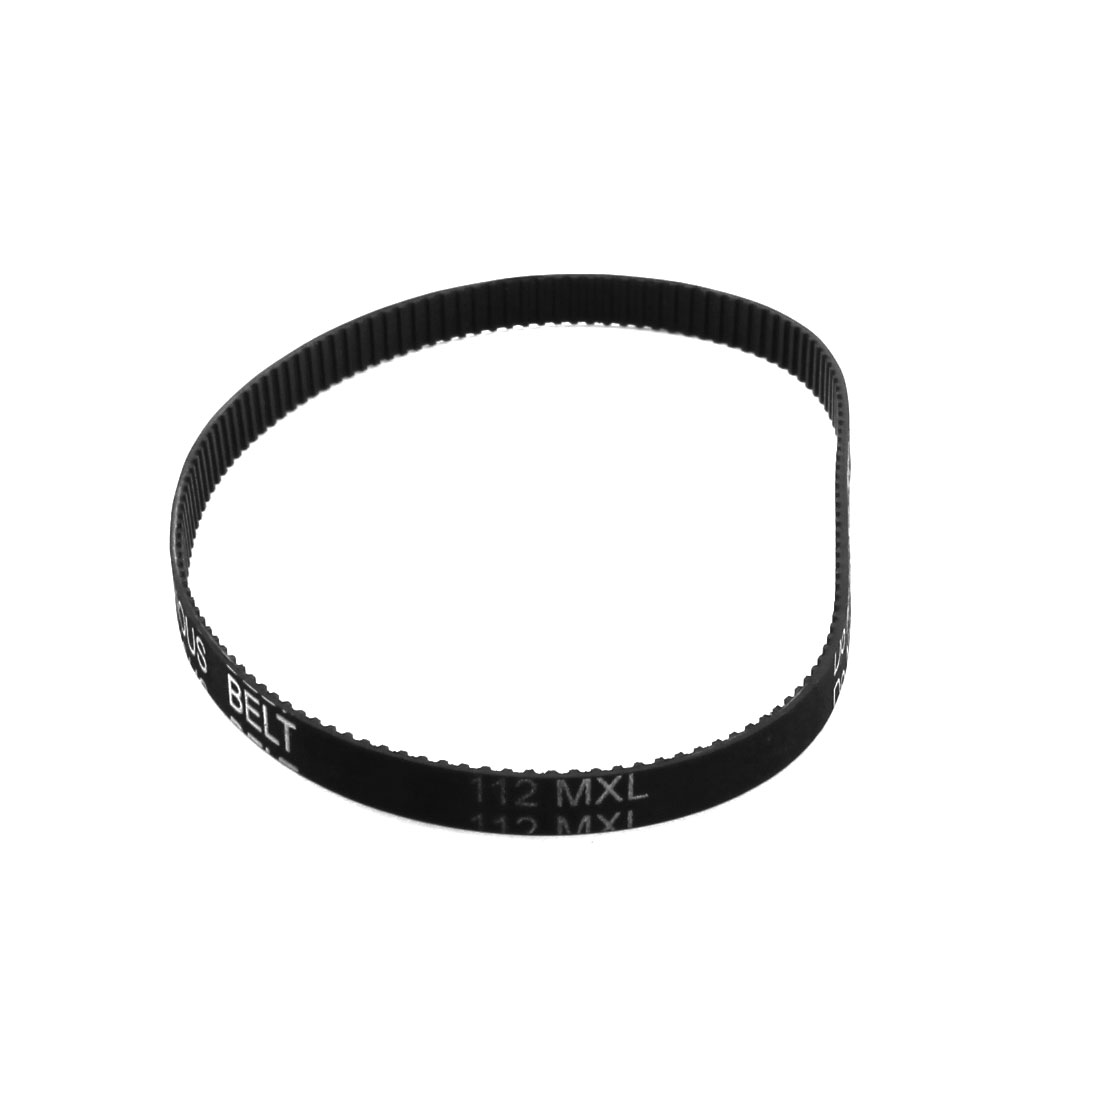 112MXL025 140-Teeth 6.4mm Wide 2.032mm Pitch Black Industrial 3D Printer Groove Synchronous Timing Belt 11.2""